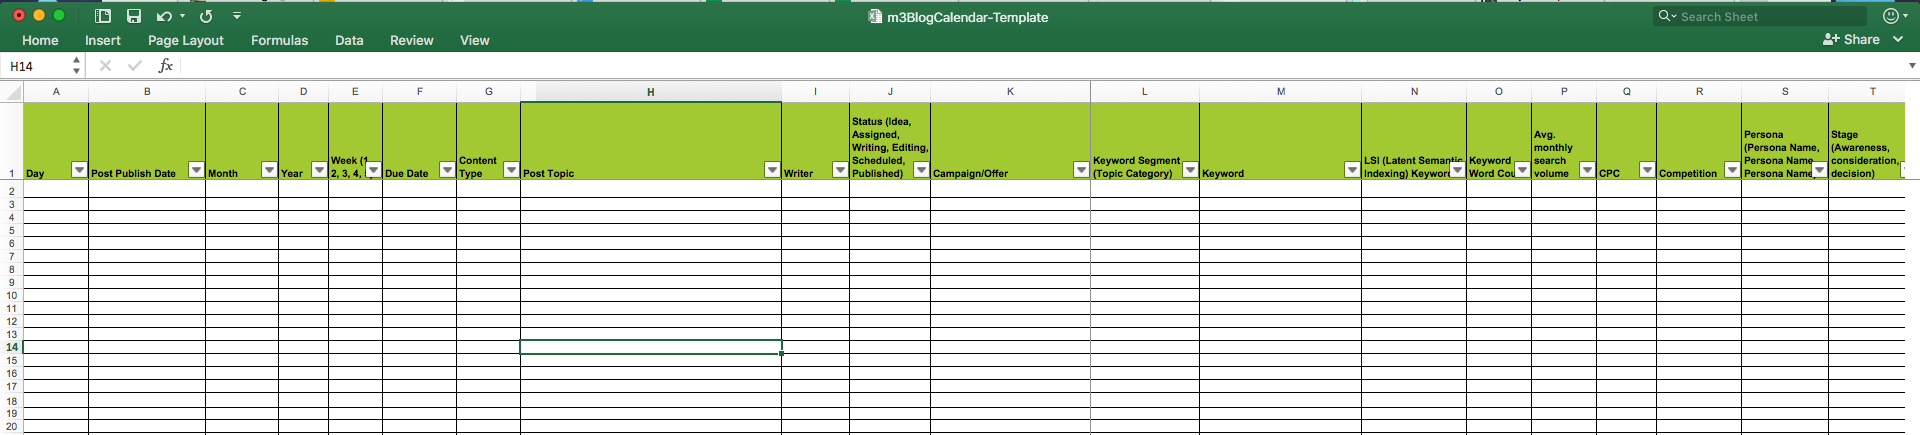 Editorial Calendar Templates for Content Marketing The Ultimate List – Templates for Lists